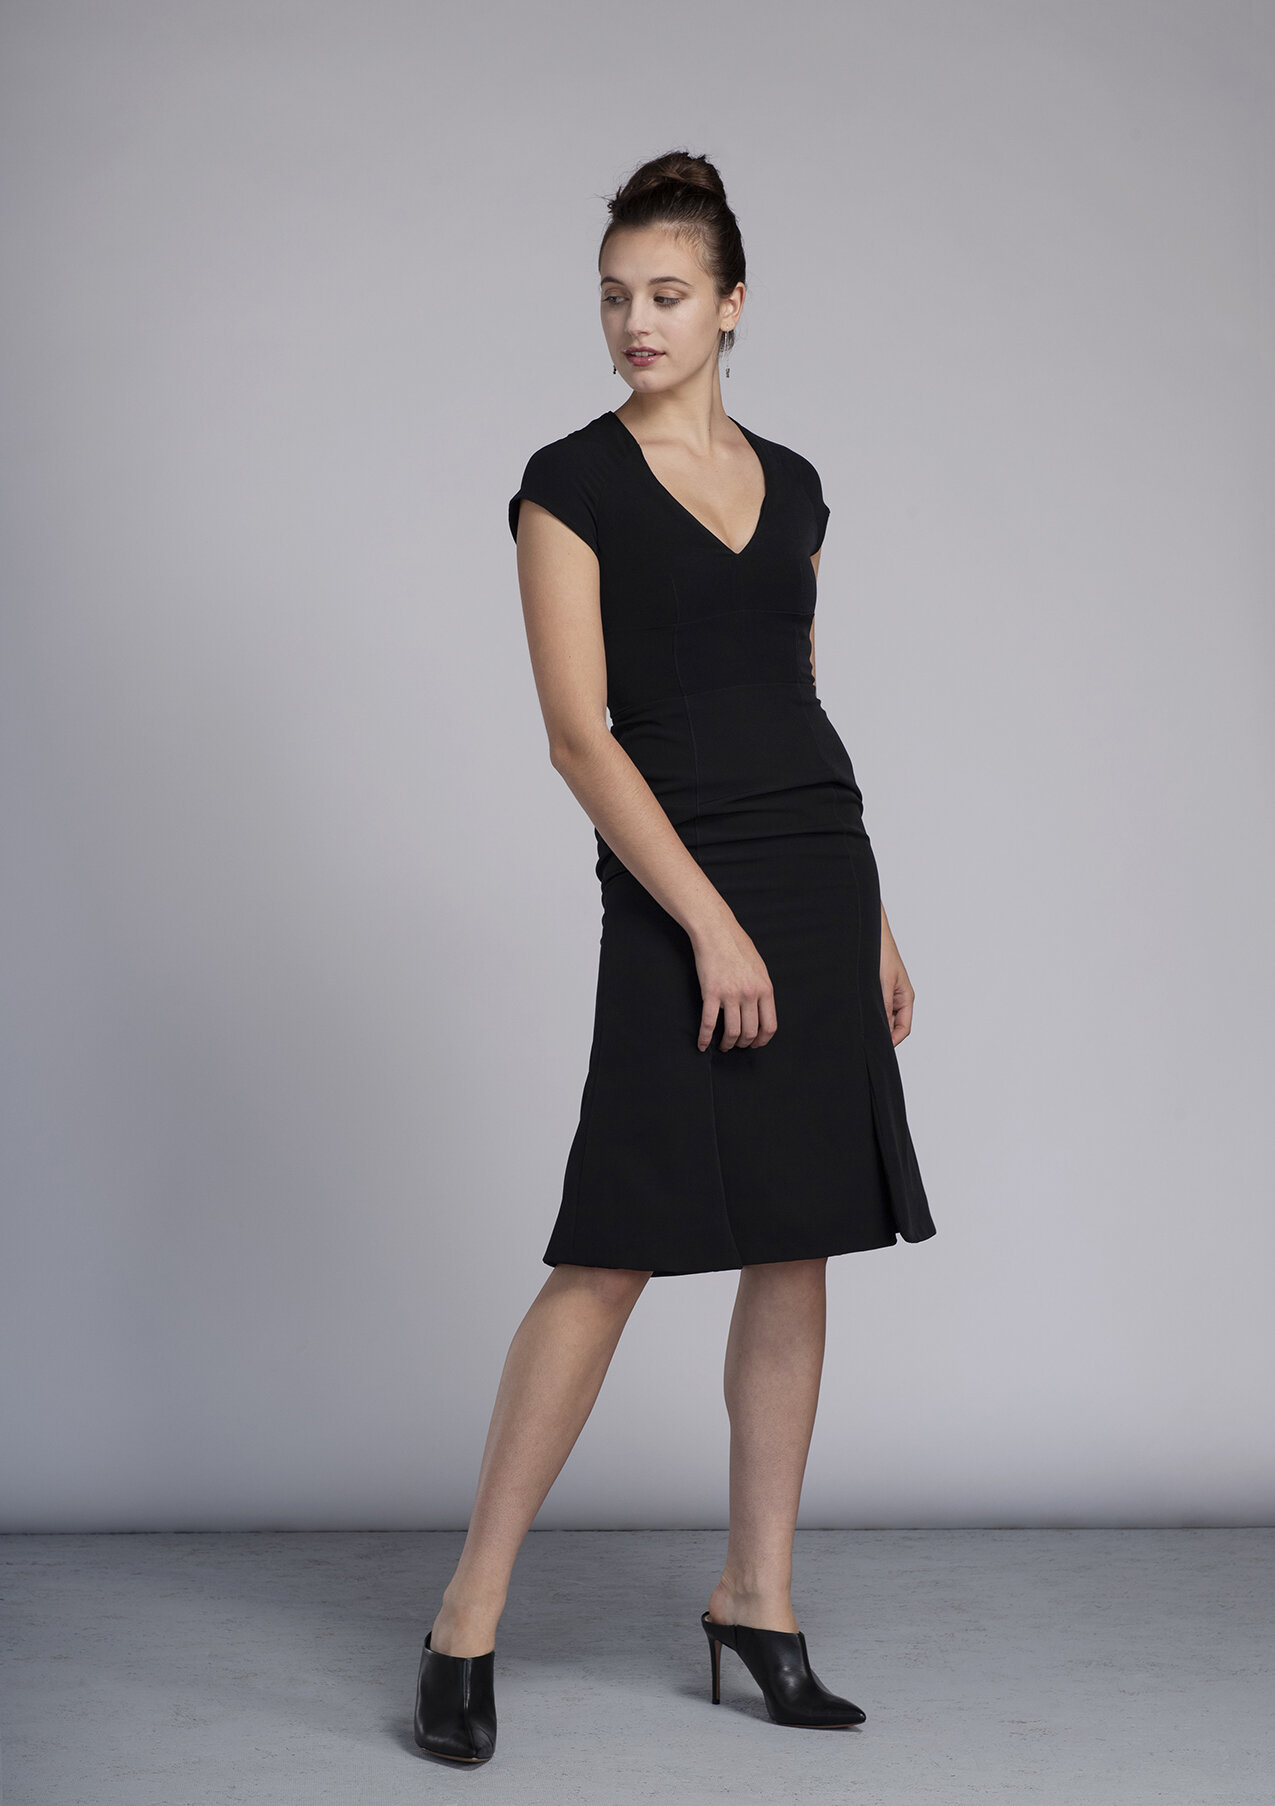 Black made-to-measure fit and flare dress